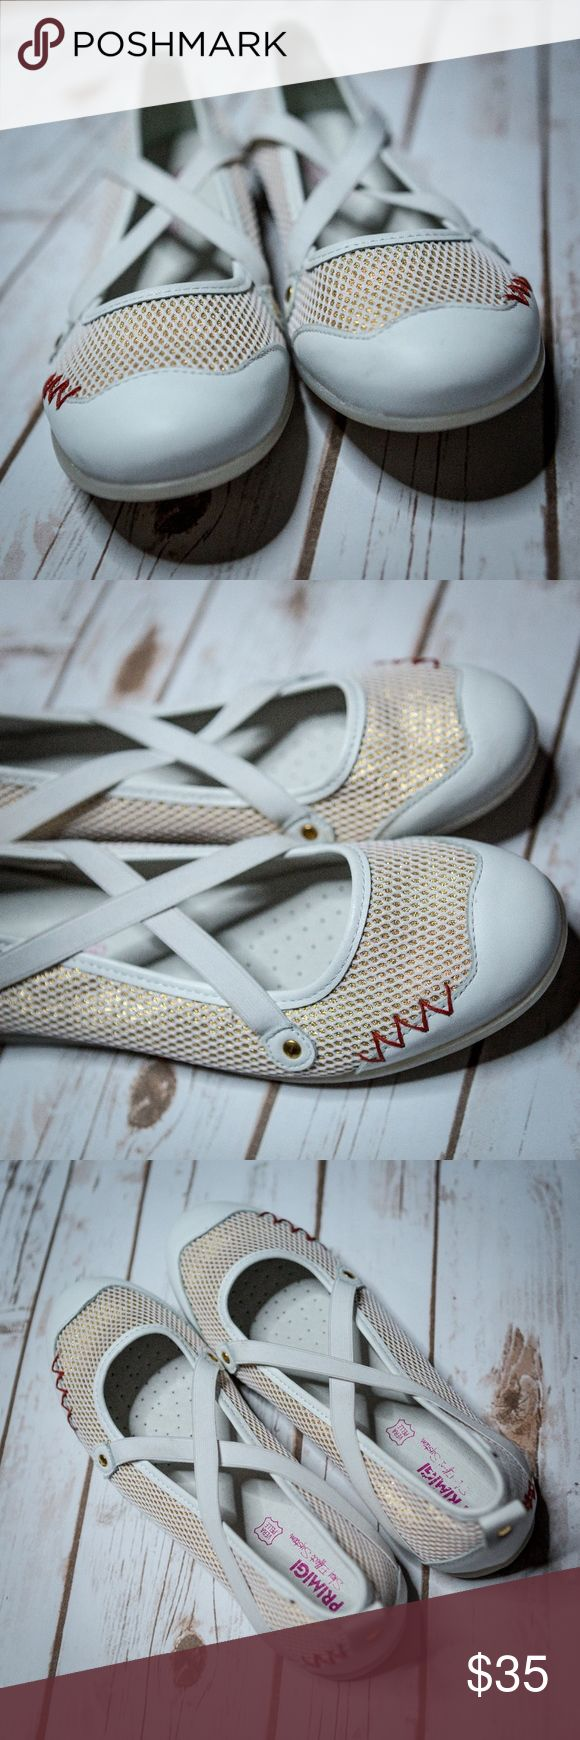 """Vera Pelle Primigi white leather Mary Janes - Sz 9 Vera Pelle Primigi white leather Mary Janes. White netting with gold underlay and red zigzag accent stitching. Gently used, but soles look brand new. Size 9.   Brand label on inside sole of right shoe is slightly rubbed off. Inside sole shows no signs of wear though.  Measurement from toe to heel (take on bottom of shoe) is 10.5."""" Widest part of shoe is 3.5""""  Feel free to ask questions or make an offer!! Vera Pelle Shoes Flats & Loafers"""